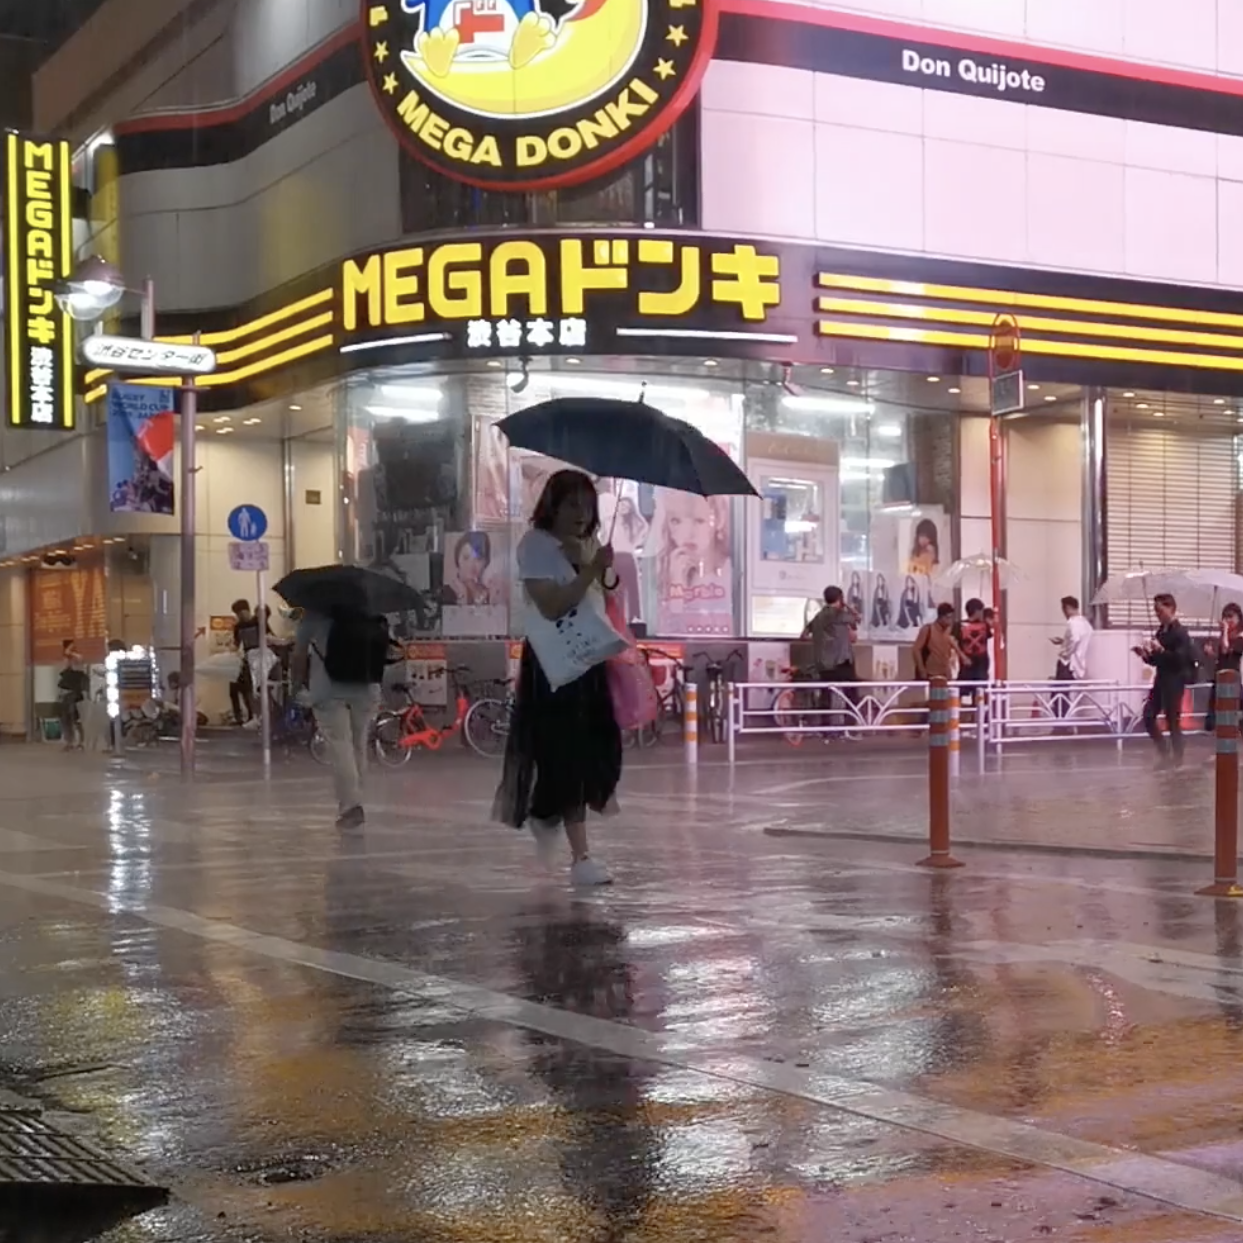 A woman walks down a rainy city streets at dusk, with bright neon lights.